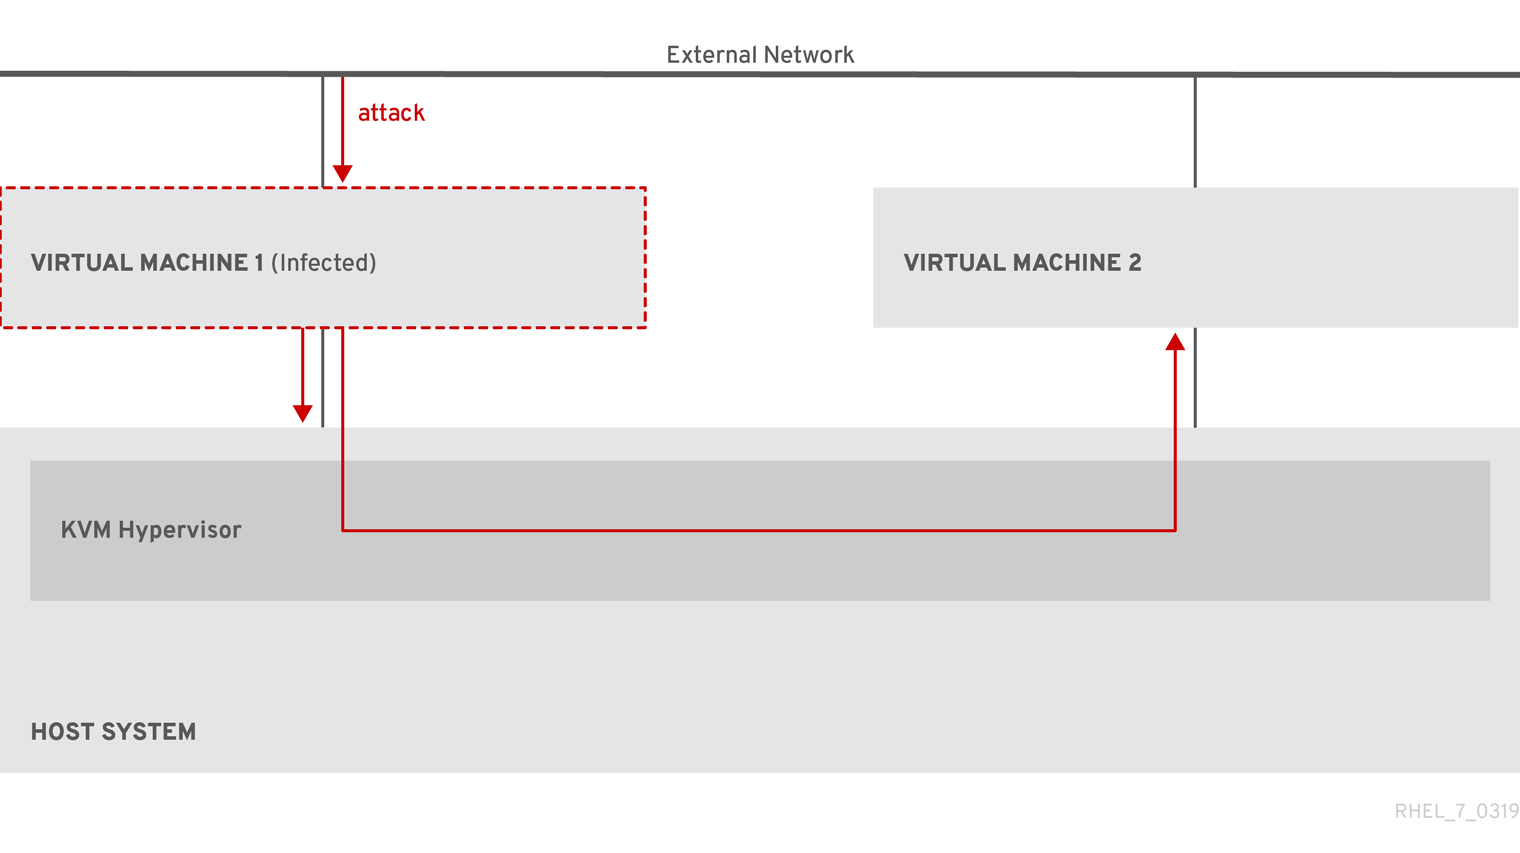 Configuring and managing virtualization Red Hat Enterprise